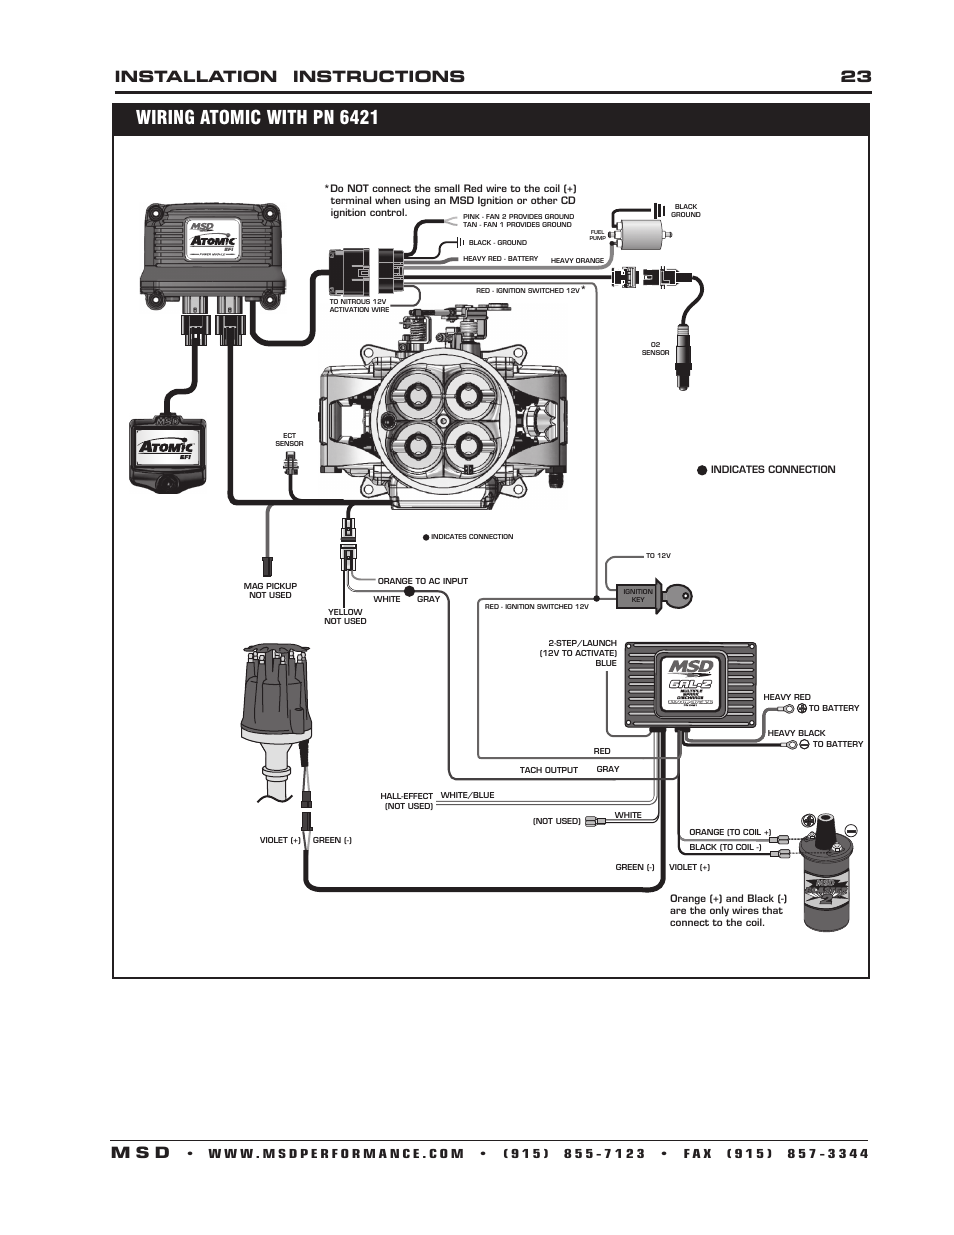 wiring diagram 1971 honda 750 four atomic four wiring diagram wiring atomic with pn 6421, installation instructions 23 m ... #15